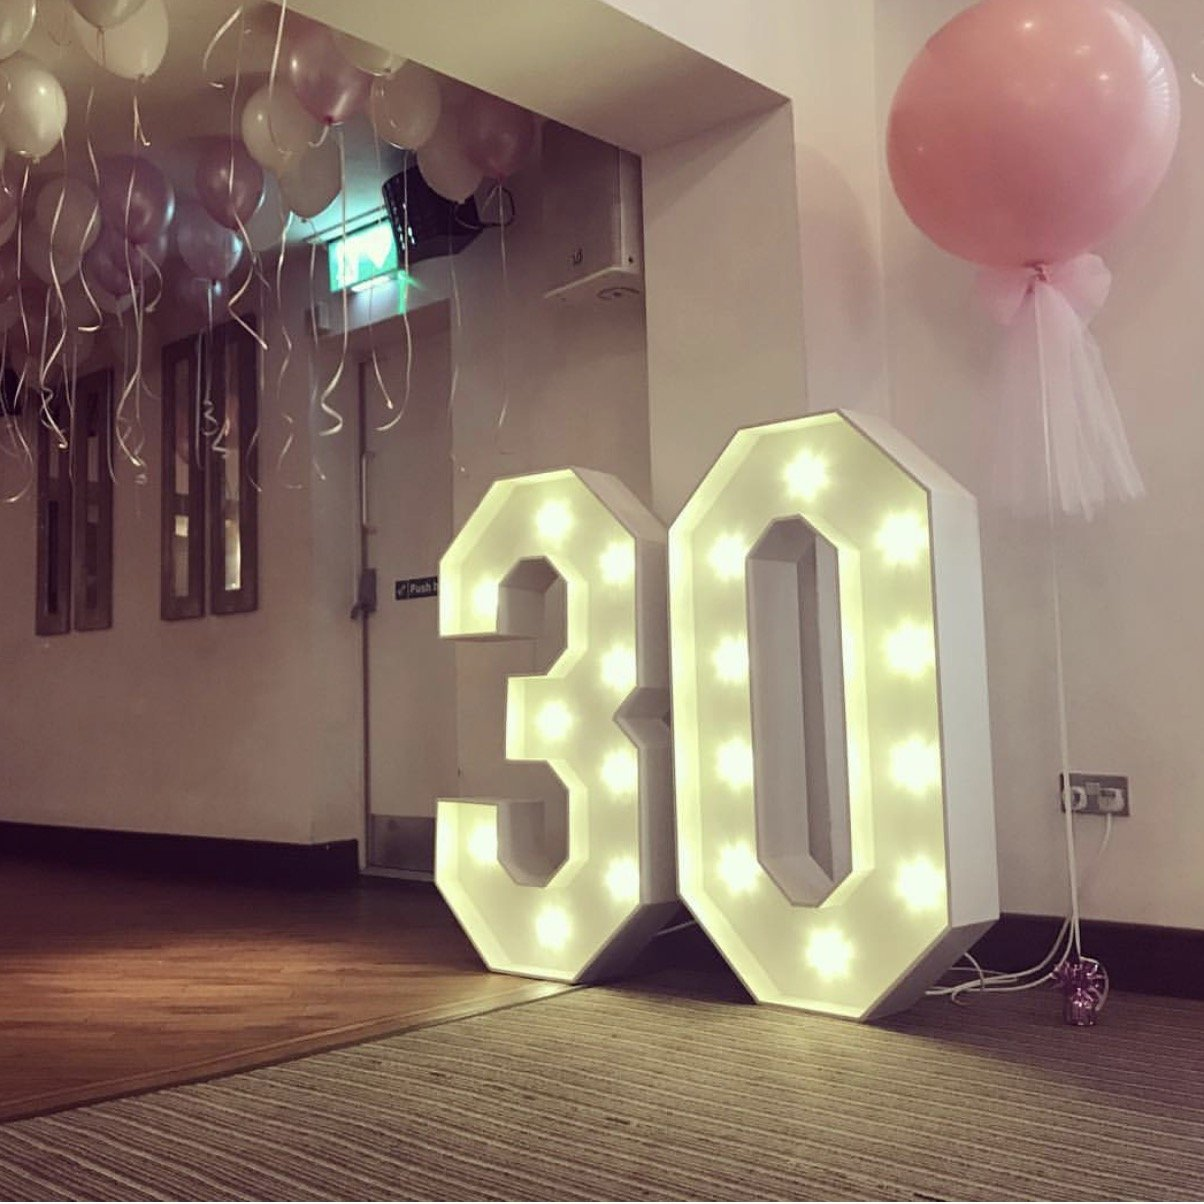 30 Fun Facts About Me | Life Begins At 30